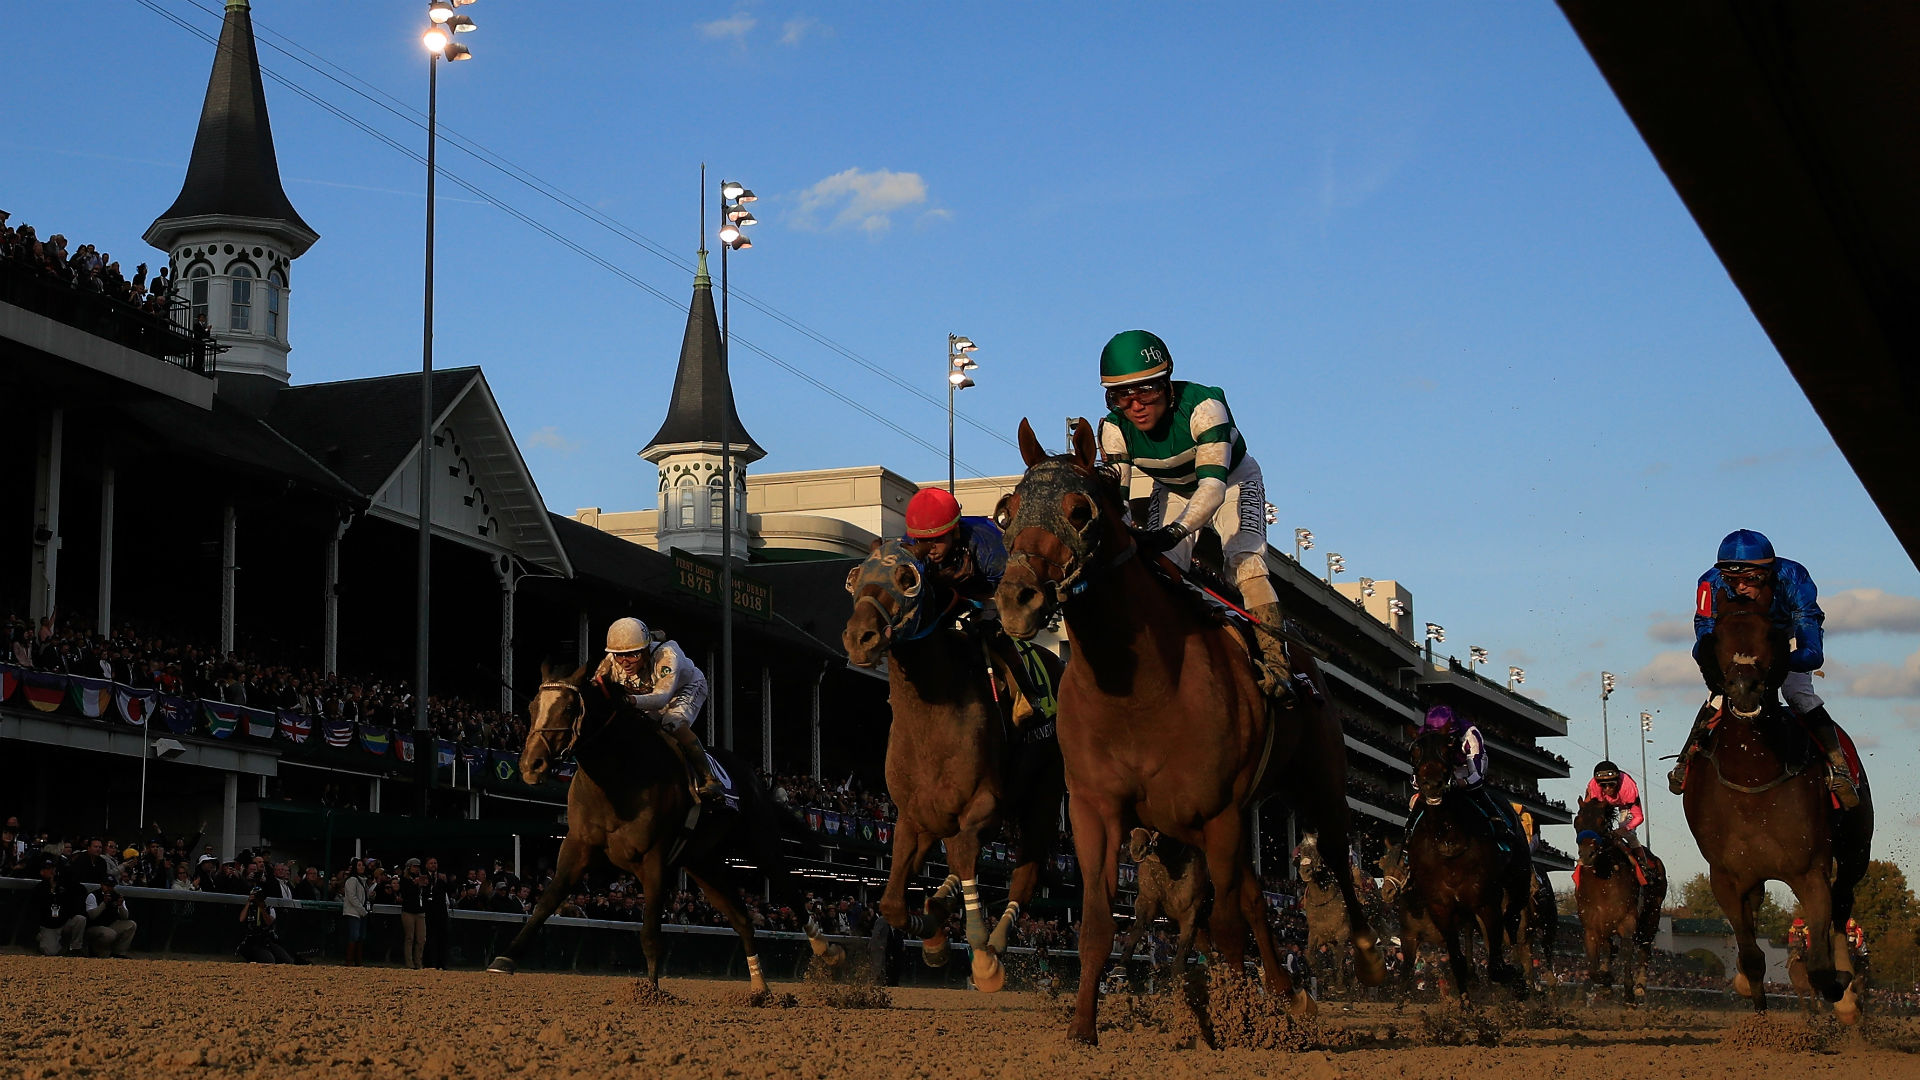 Triple Crown schedule 2020: Here are new dates for the Kentucky Derby, Preakness, Belmont horse races